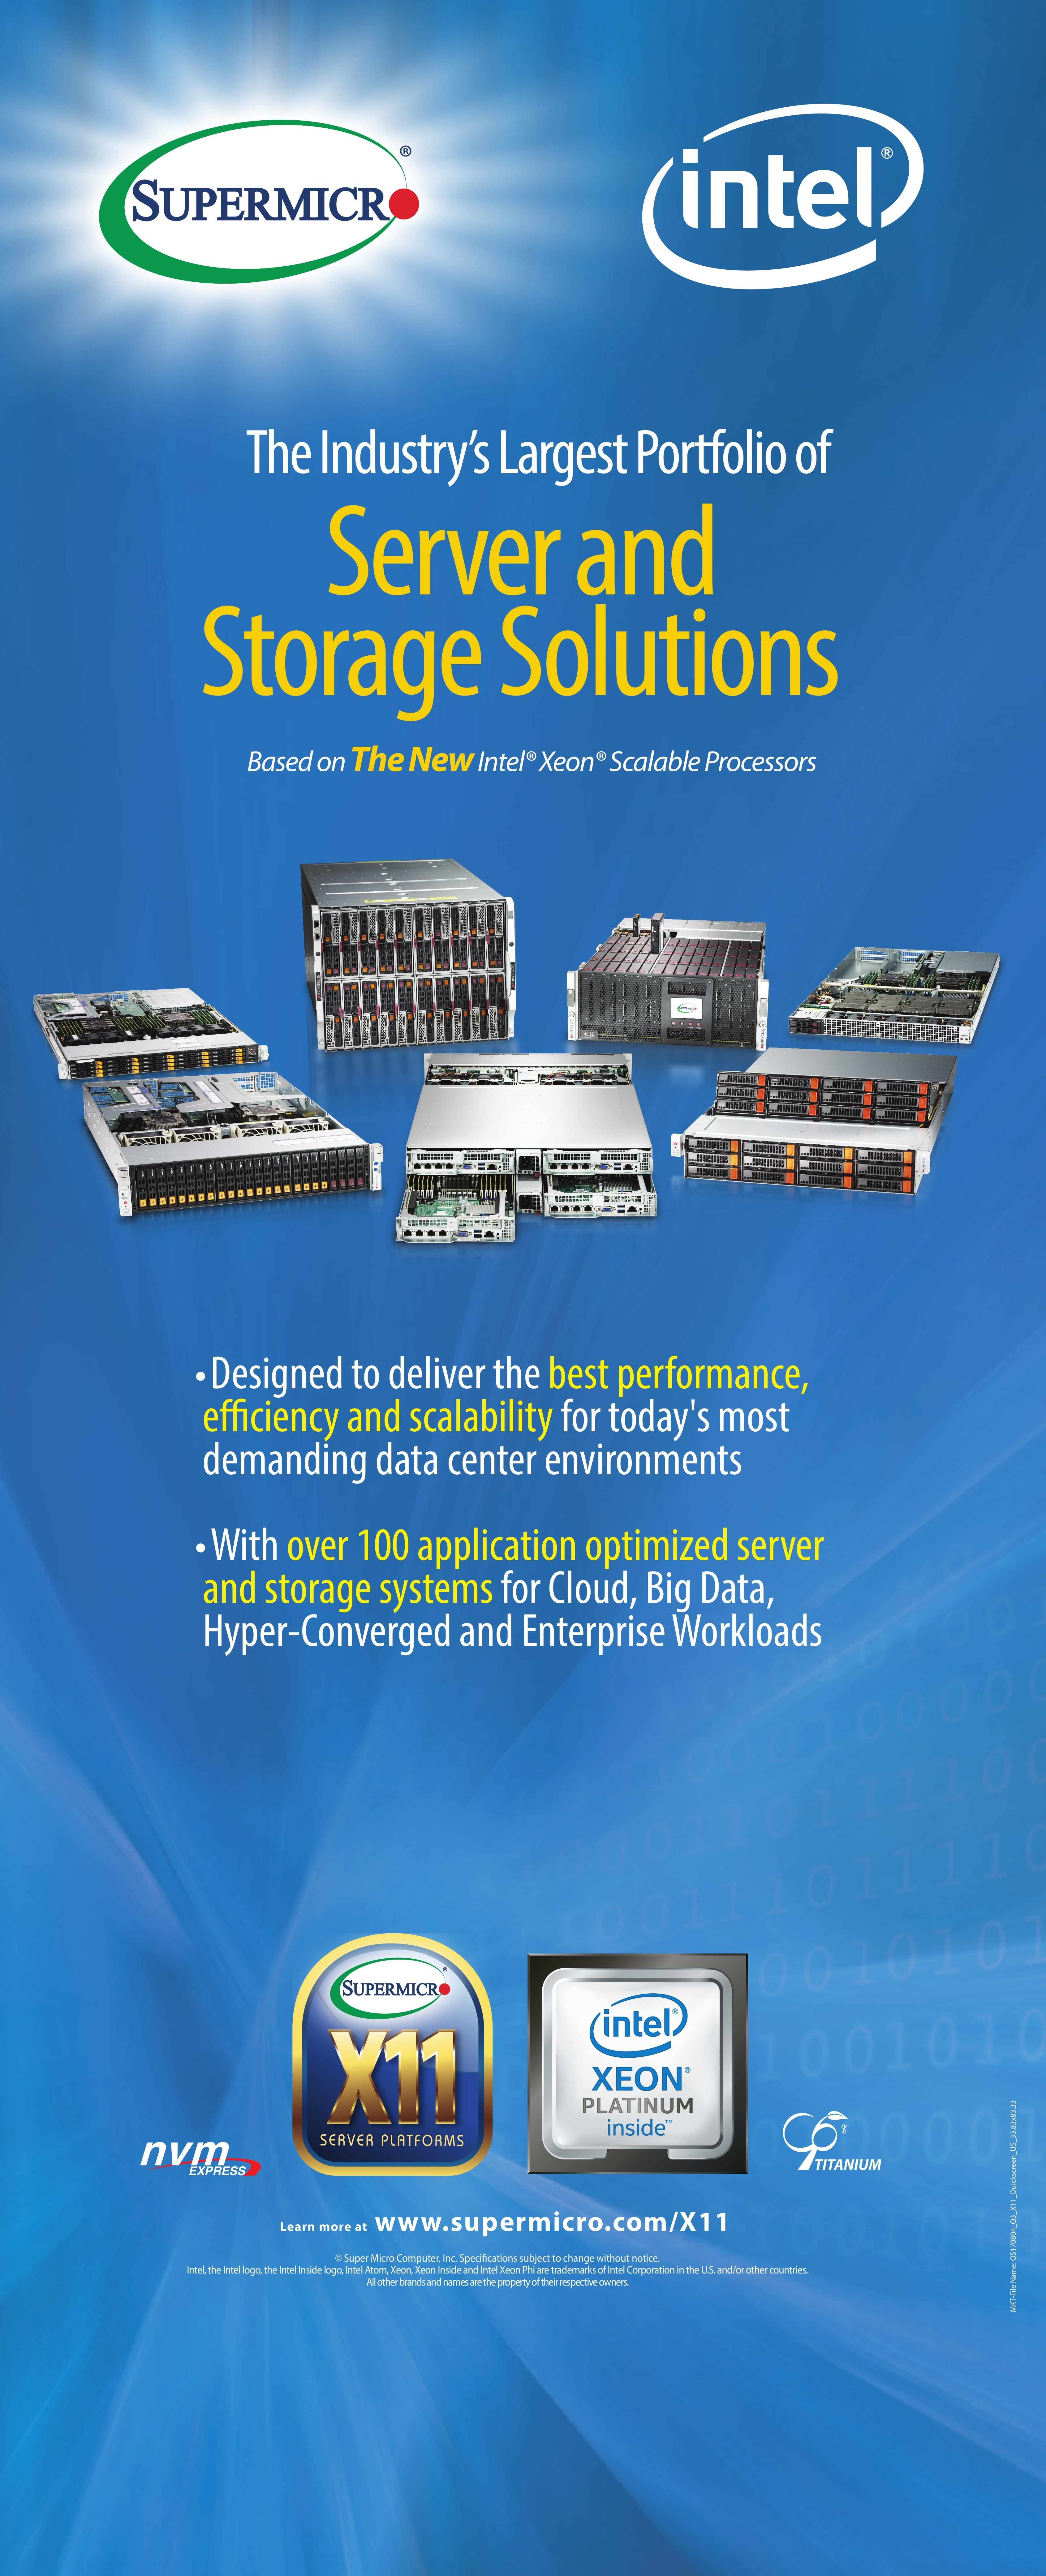 SUPERMICRO Servers, Authorized Reseller